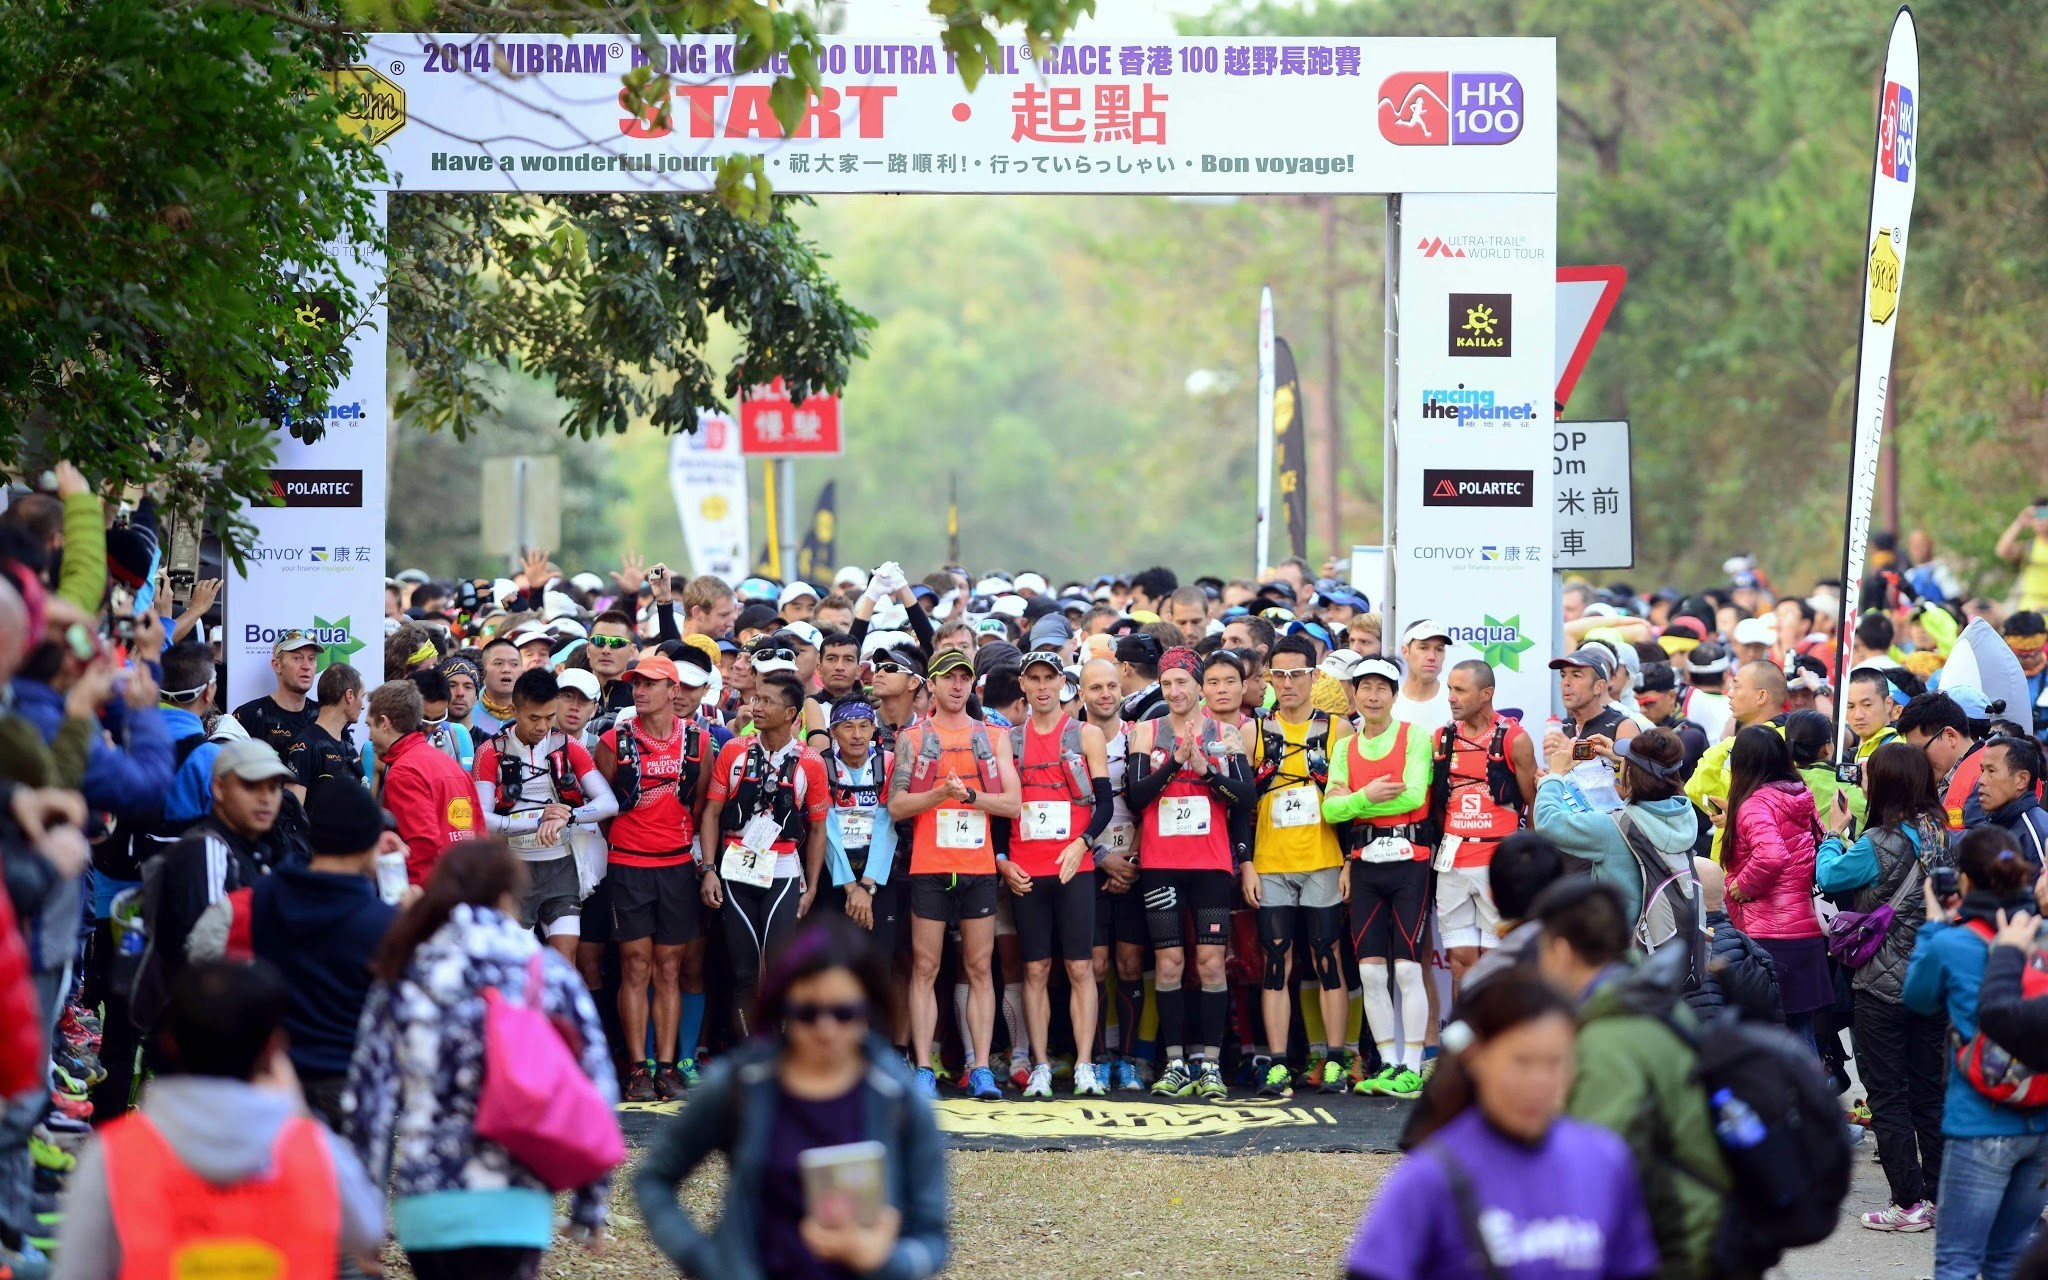 Vibram Hong Kong 100 was elevated to Series in the Ultra-Trail® World Tour